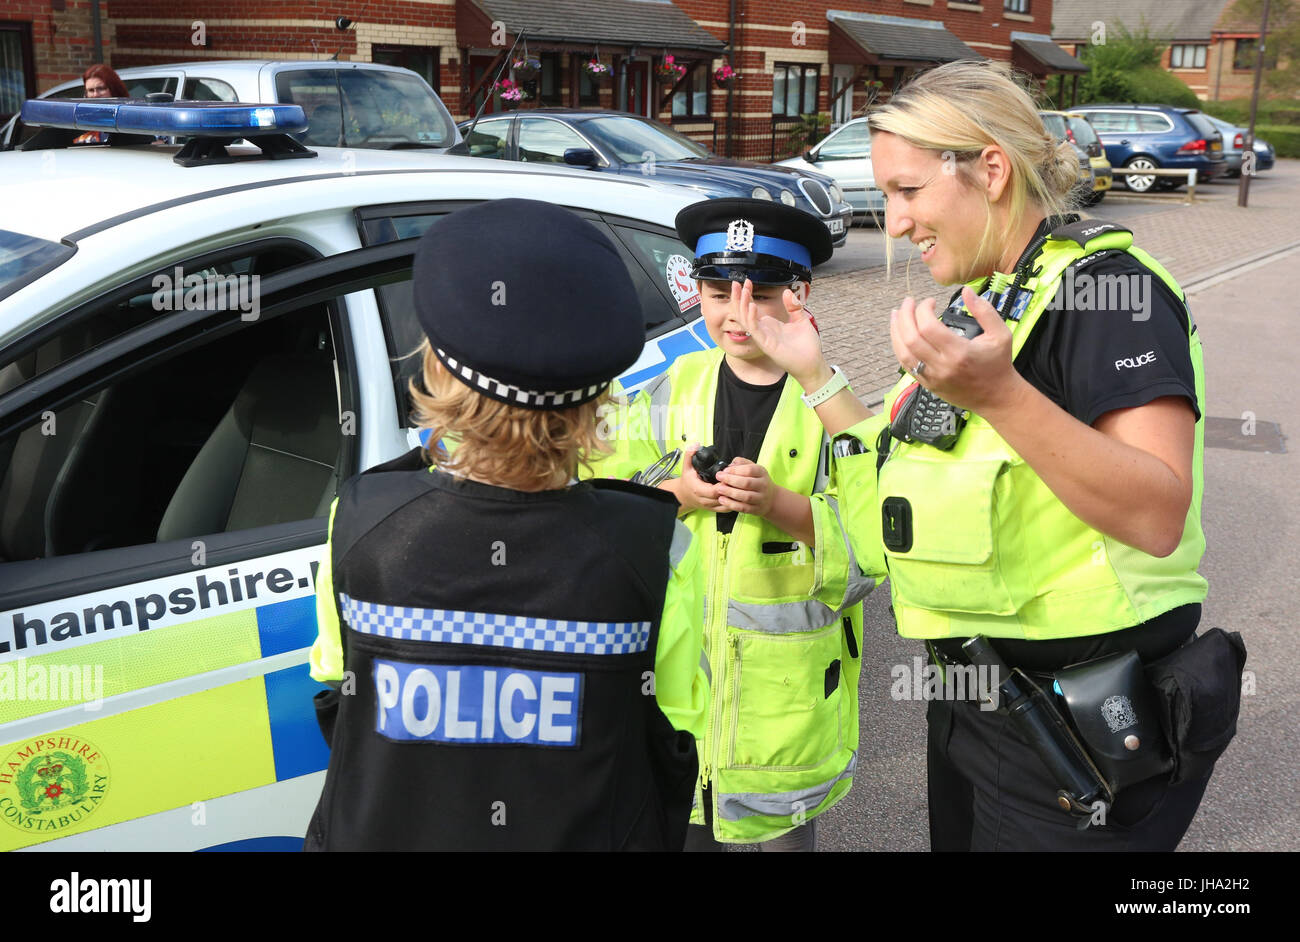 Licensed To UK News In PicturesPortsmouthHampshire Thursday 13th July 2017 Police Paid A Visit Local Boy Whose Mum Put Out Plea On Facebook Asking